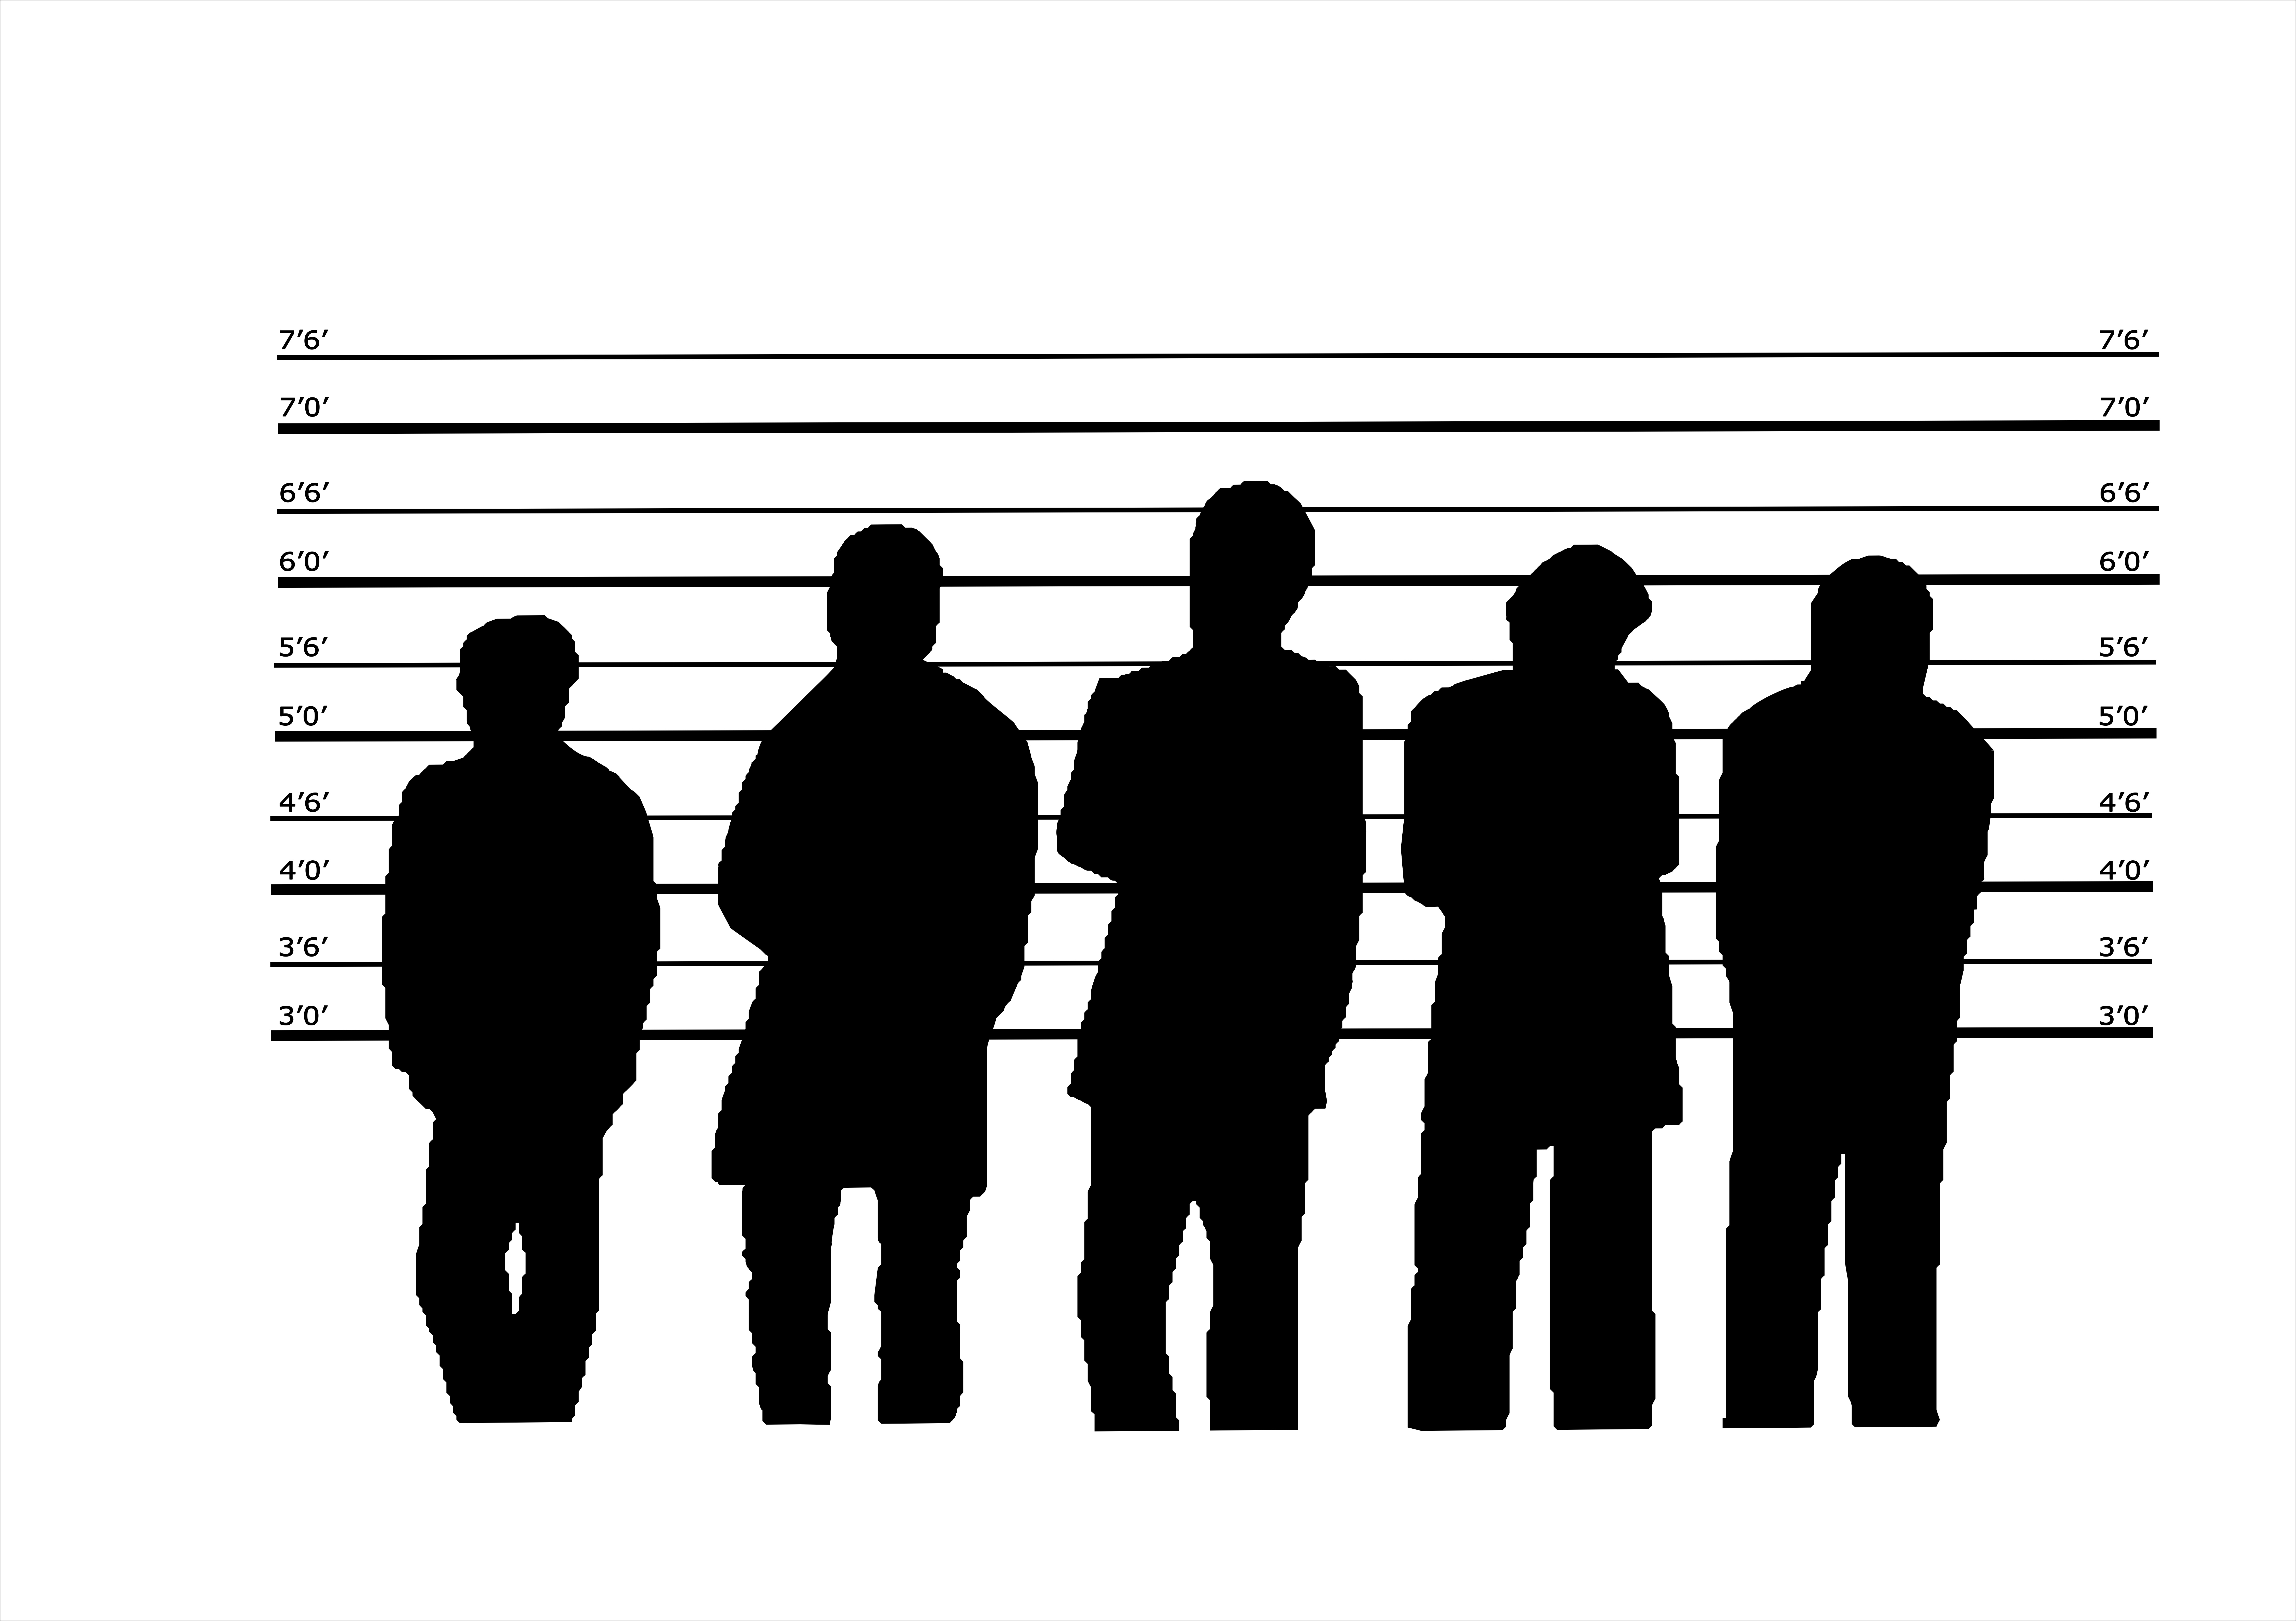 Silhouette of 5 criminal suspects in a police line-up representing the 5 main fleet mechanical failures.